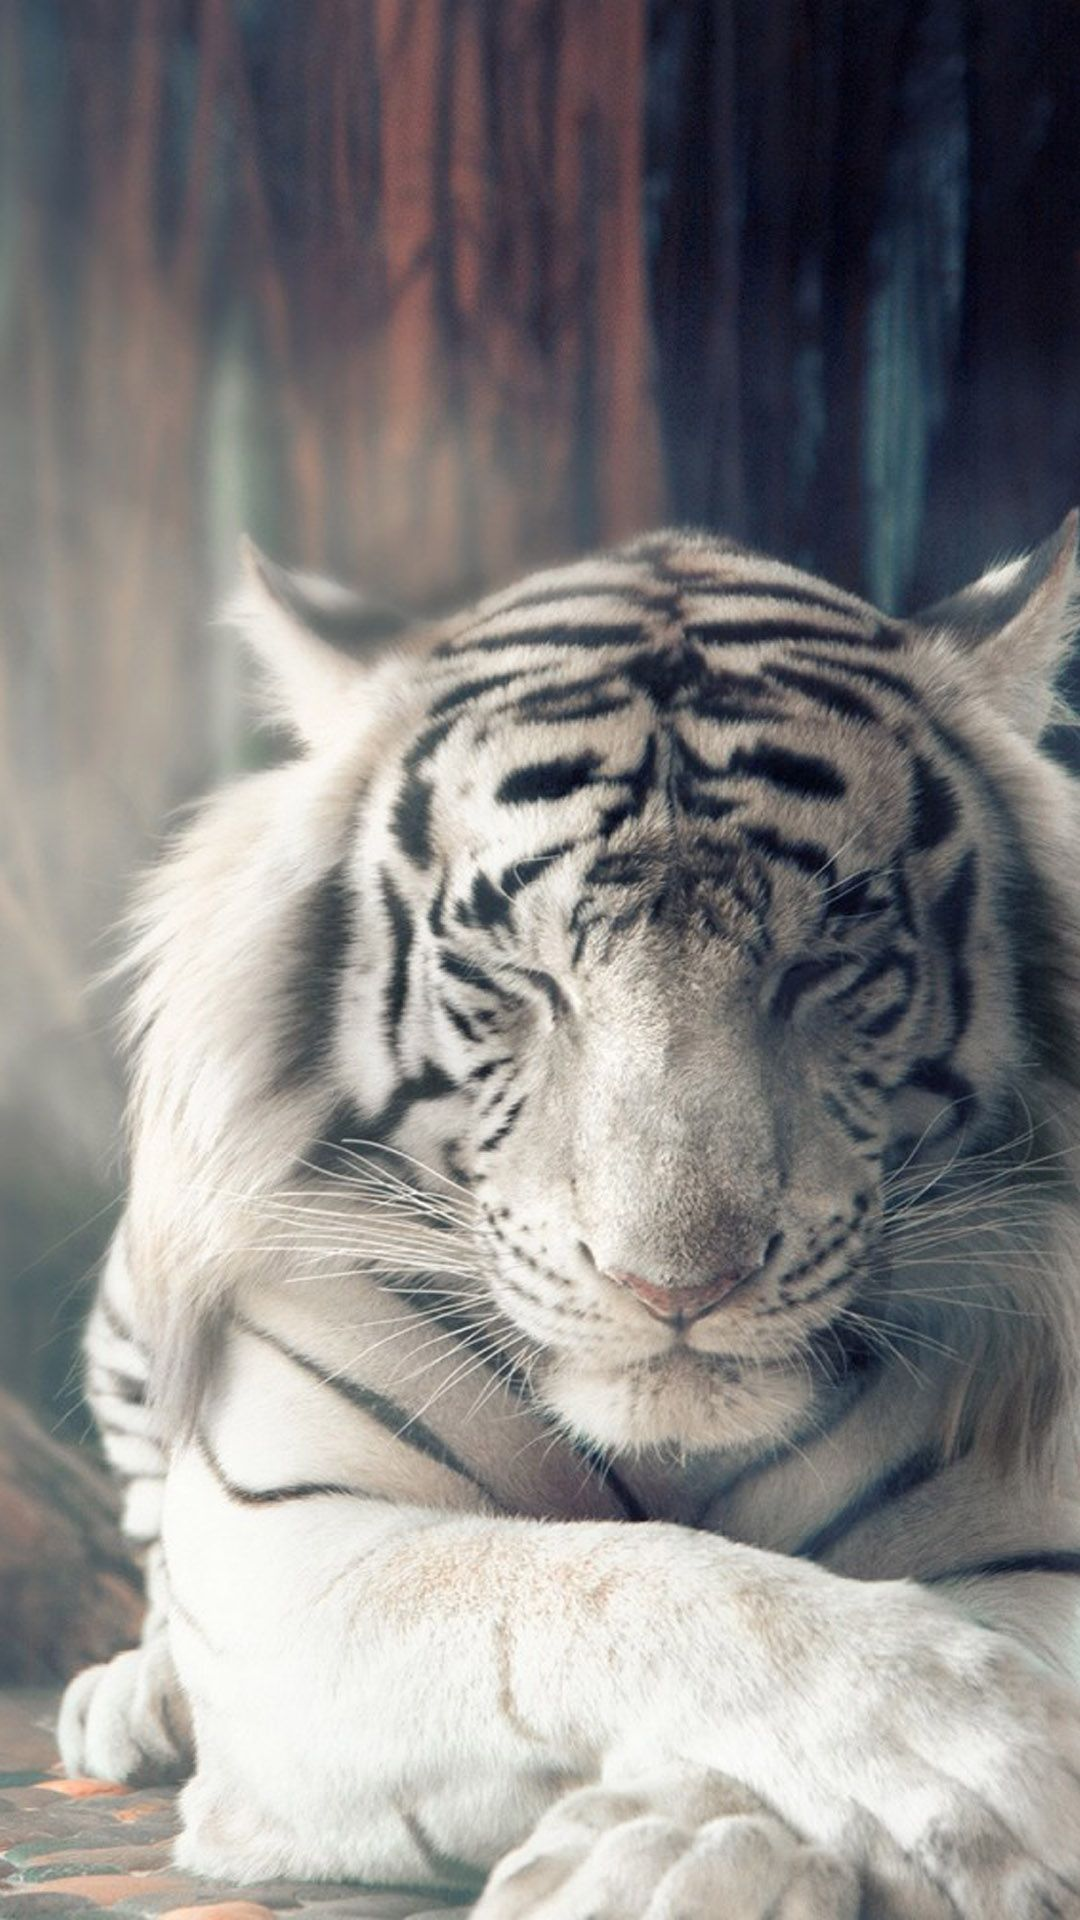 White Tiger Autumn Sunlight Hd Mobile Wallpaper Tiger Spirit Animal Animals Beautiful Tiger Wallpaper